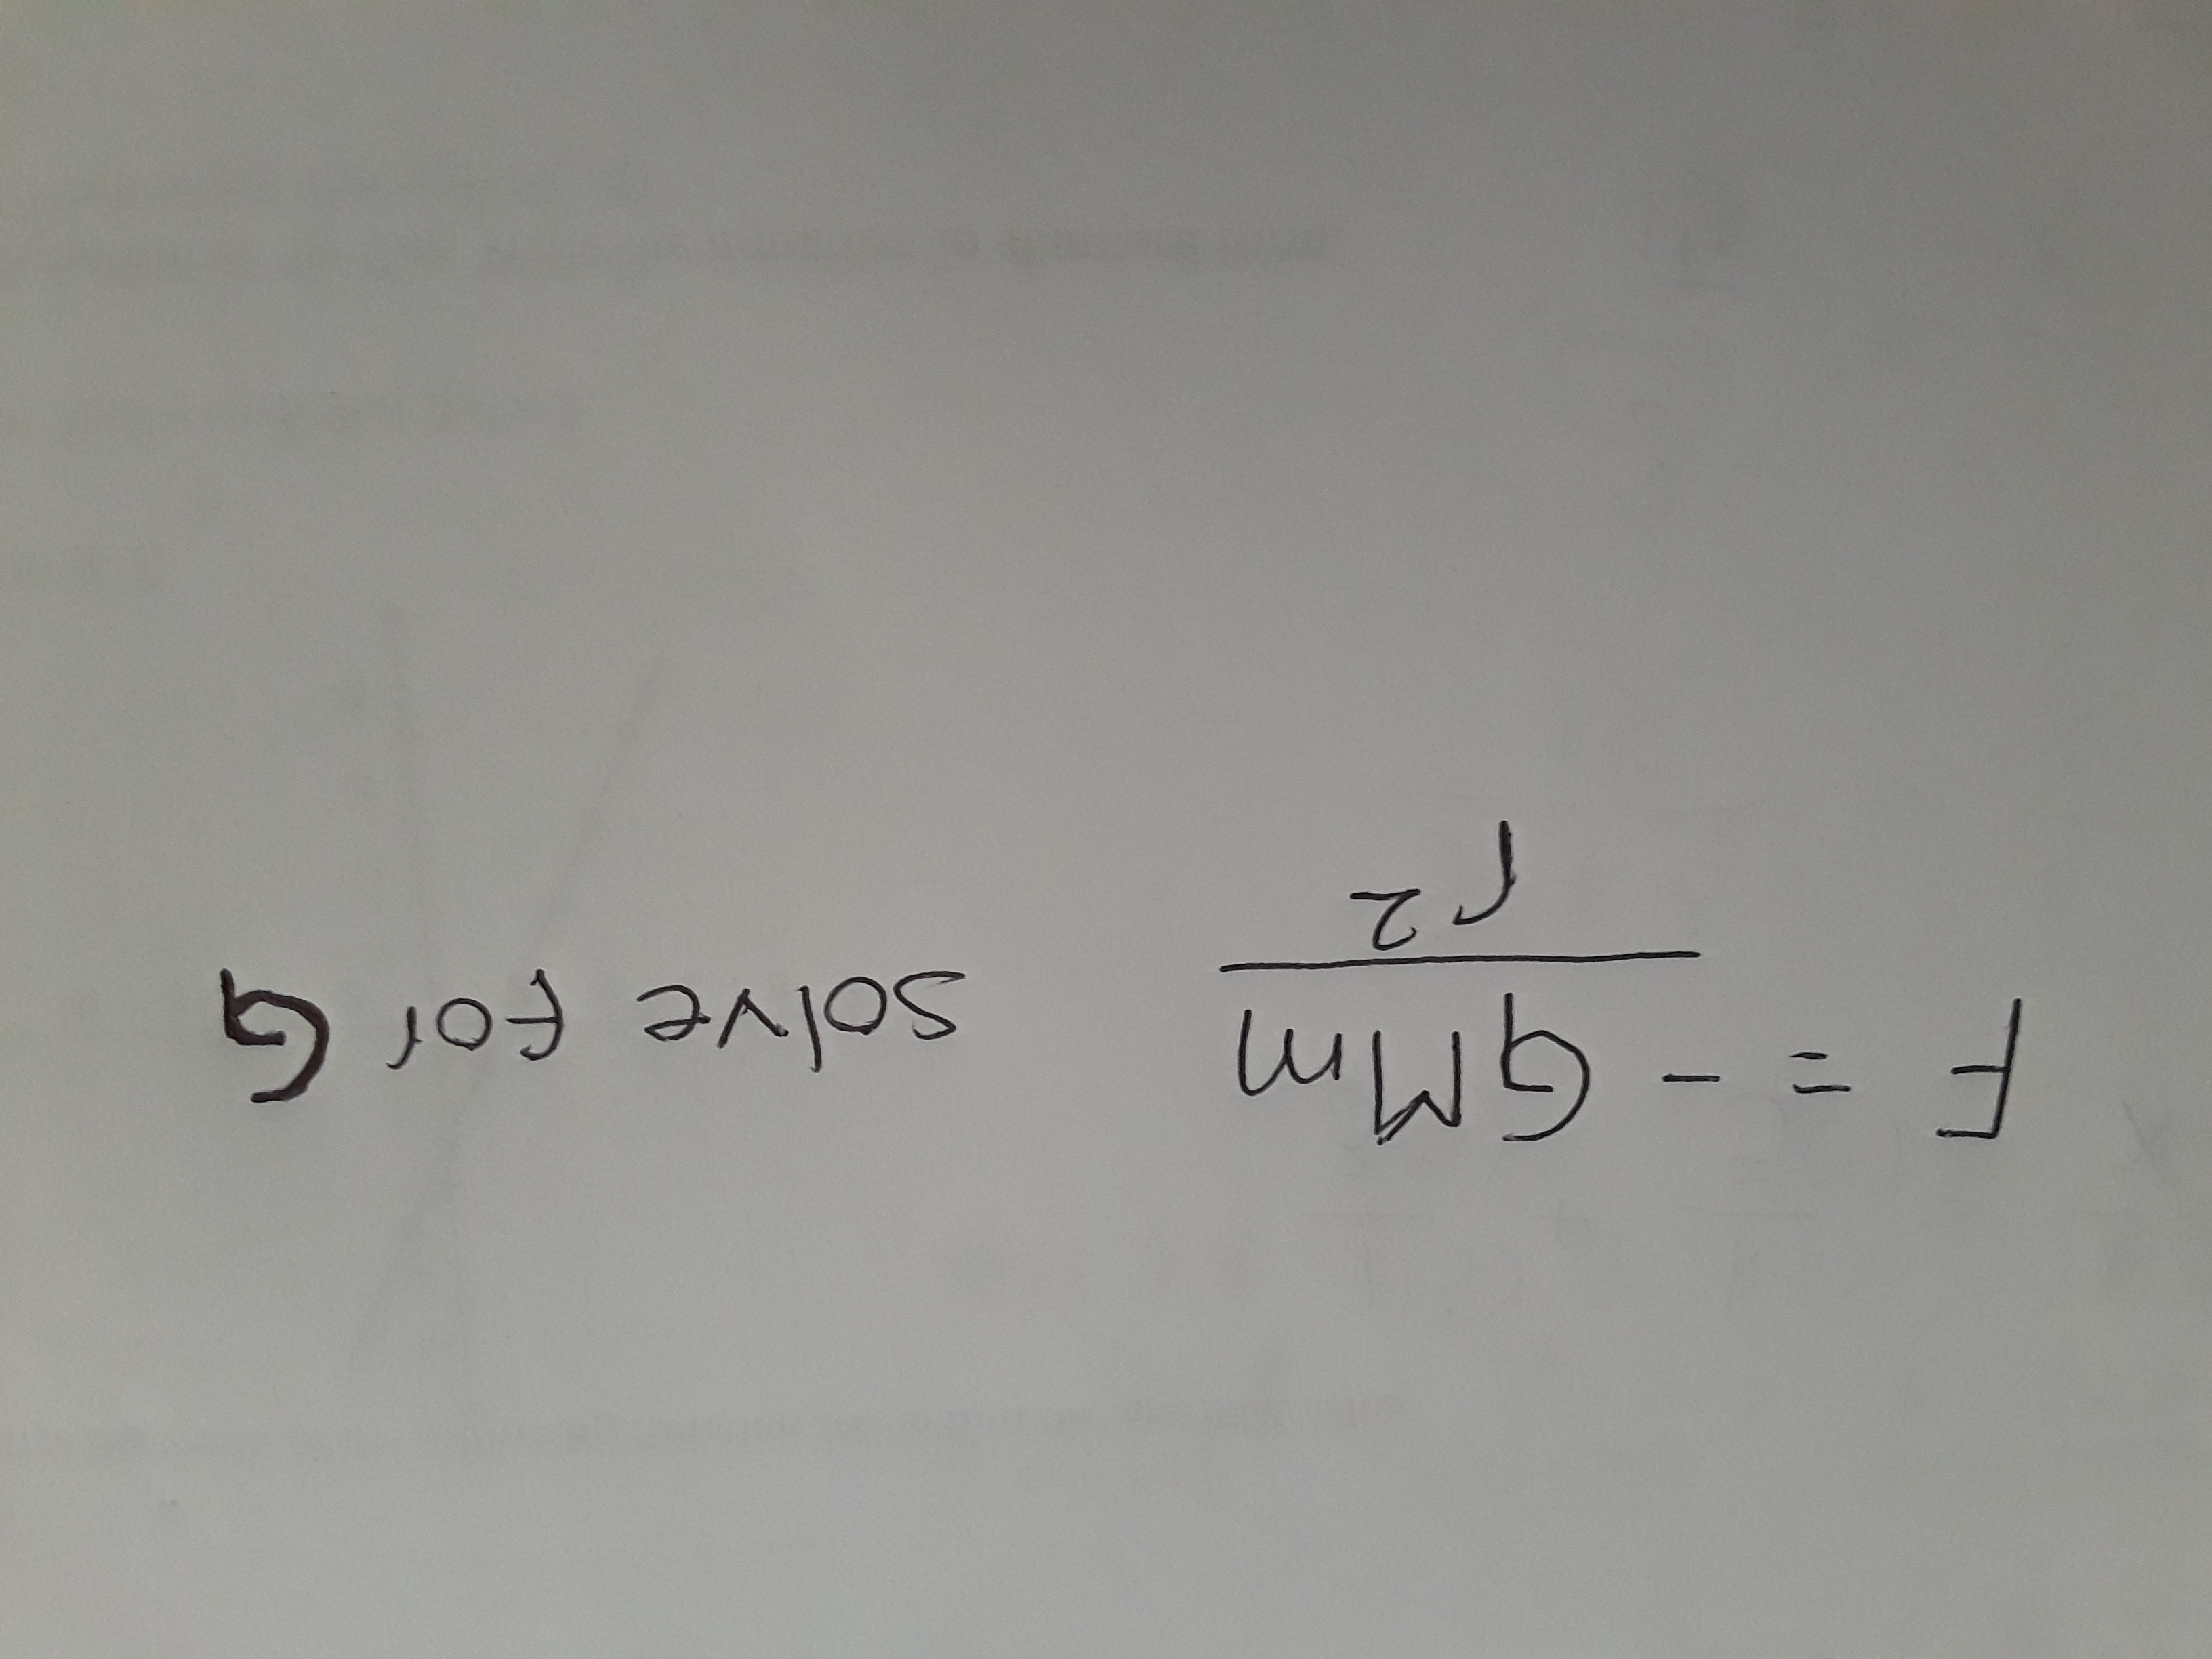 F=-GMm solve for G